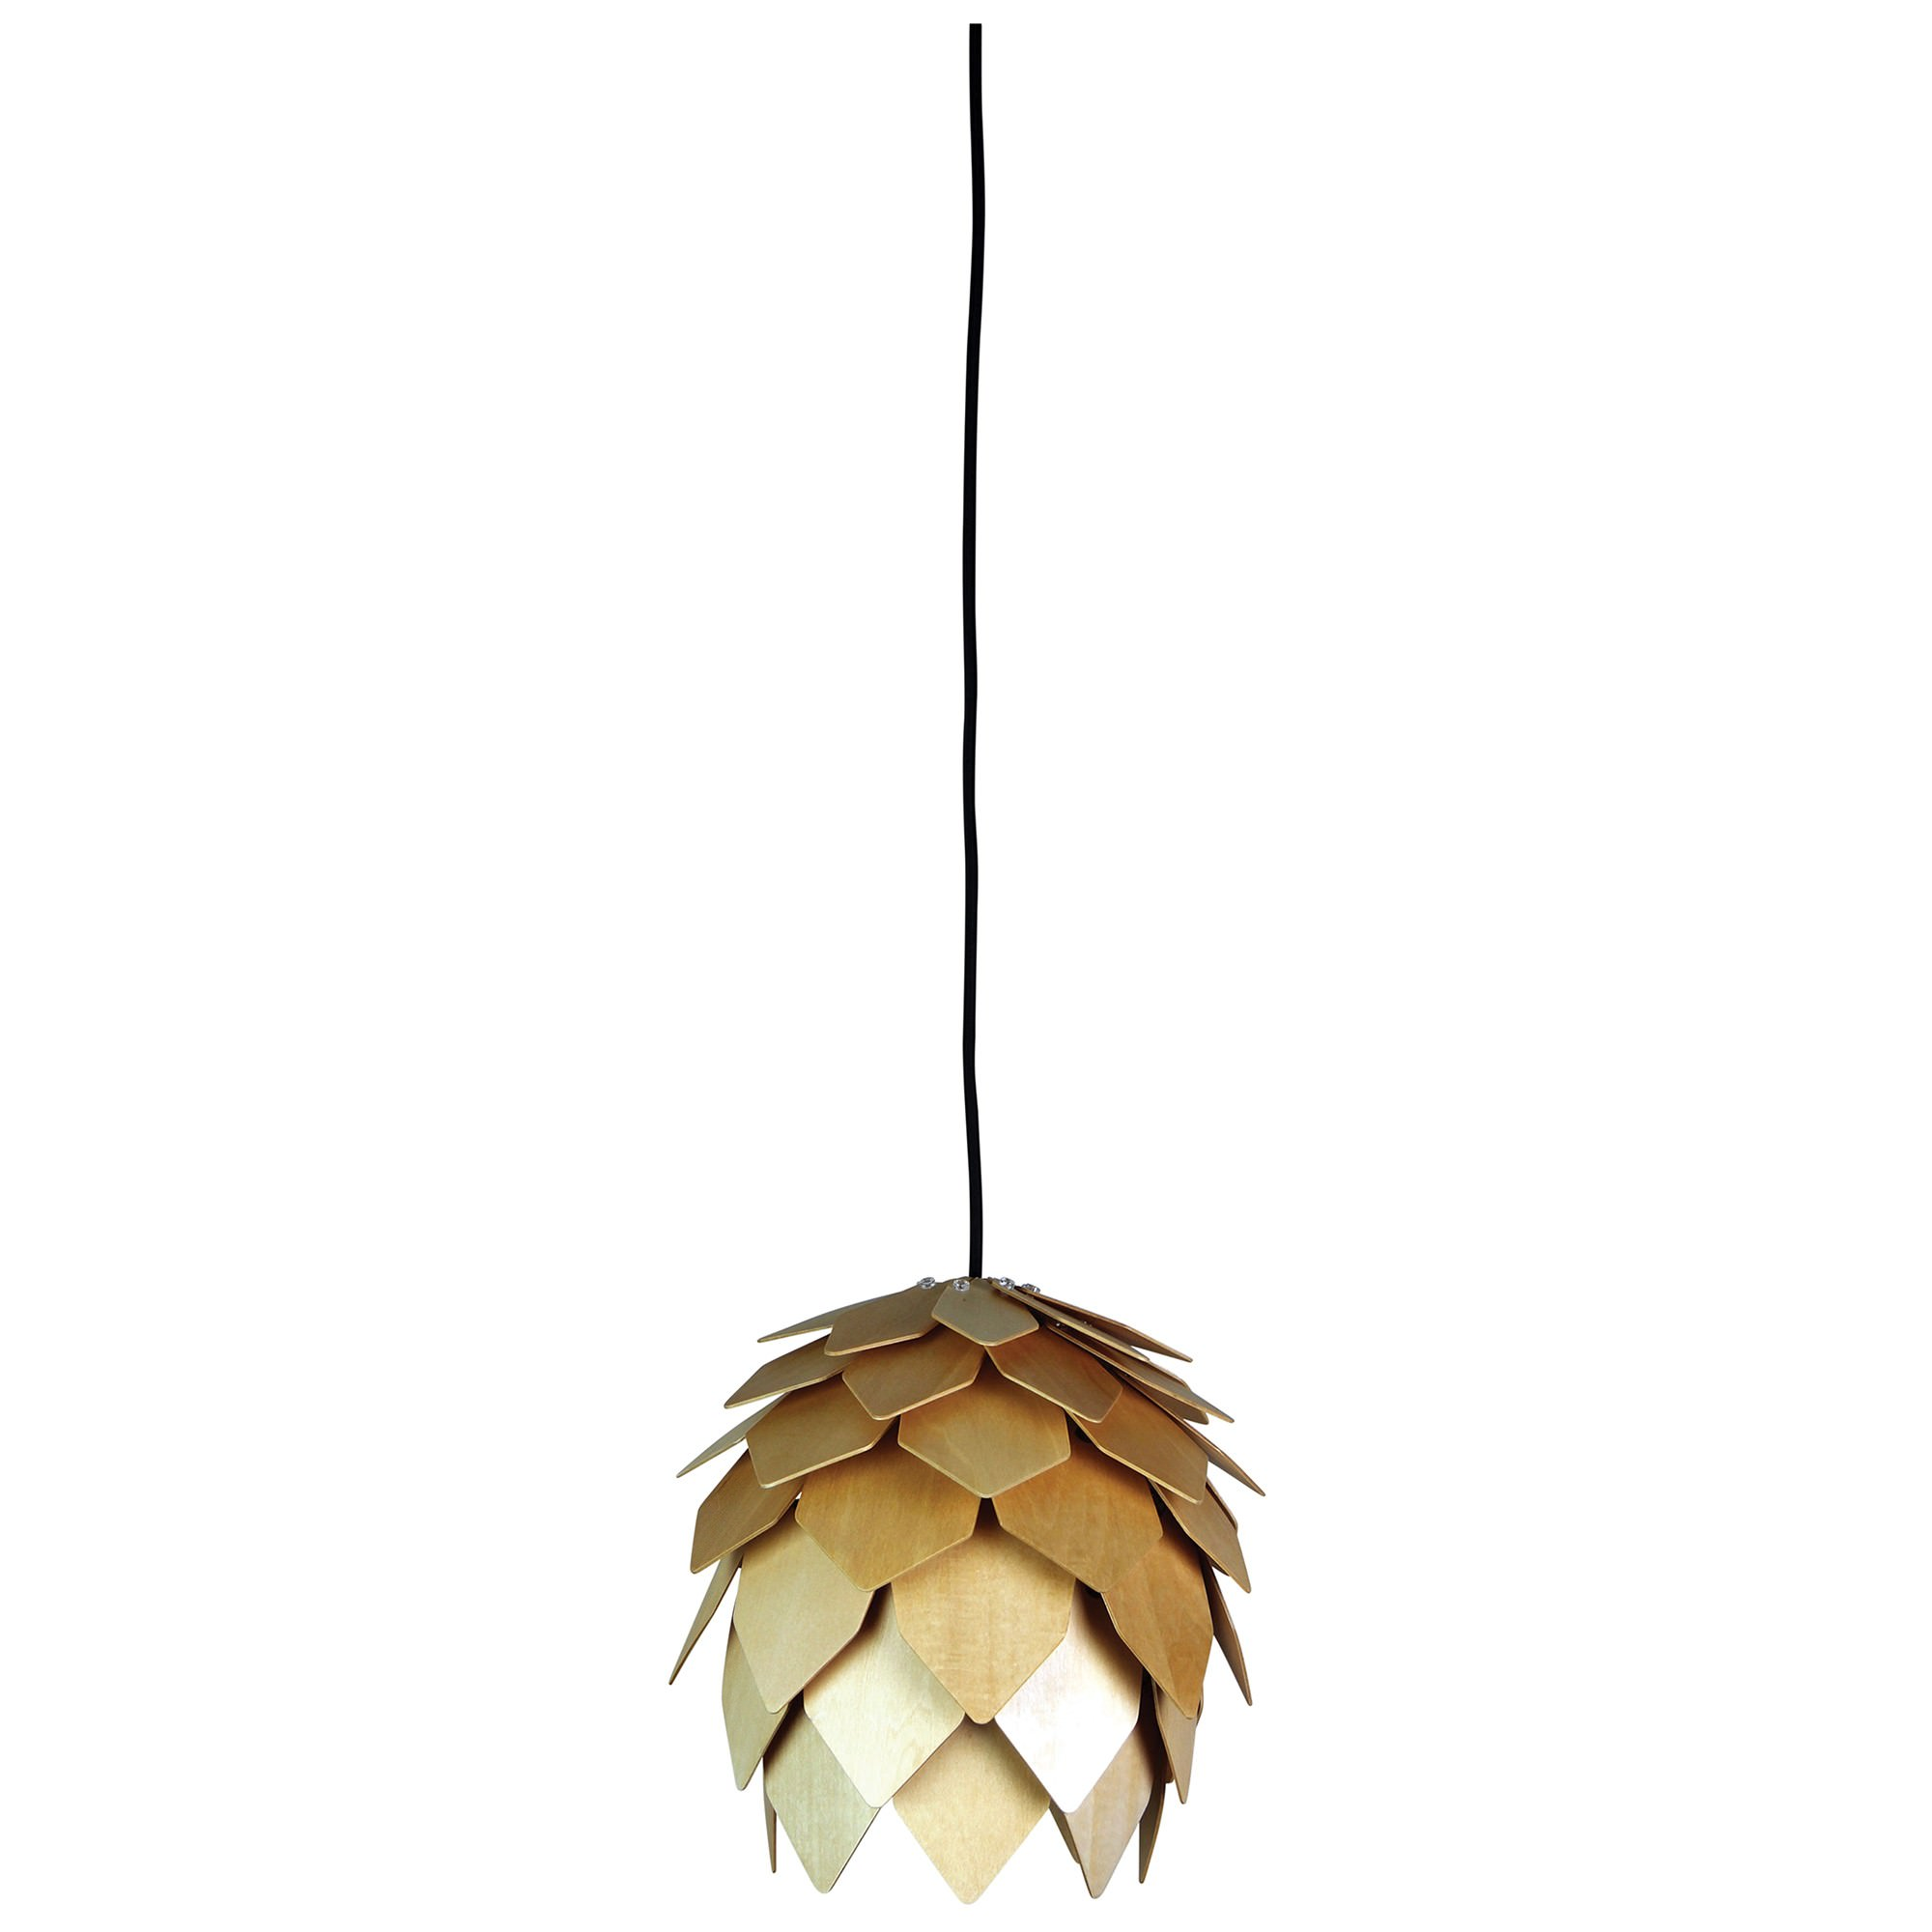 Acorn Handcrafted Timber Pendant Light, 25cm